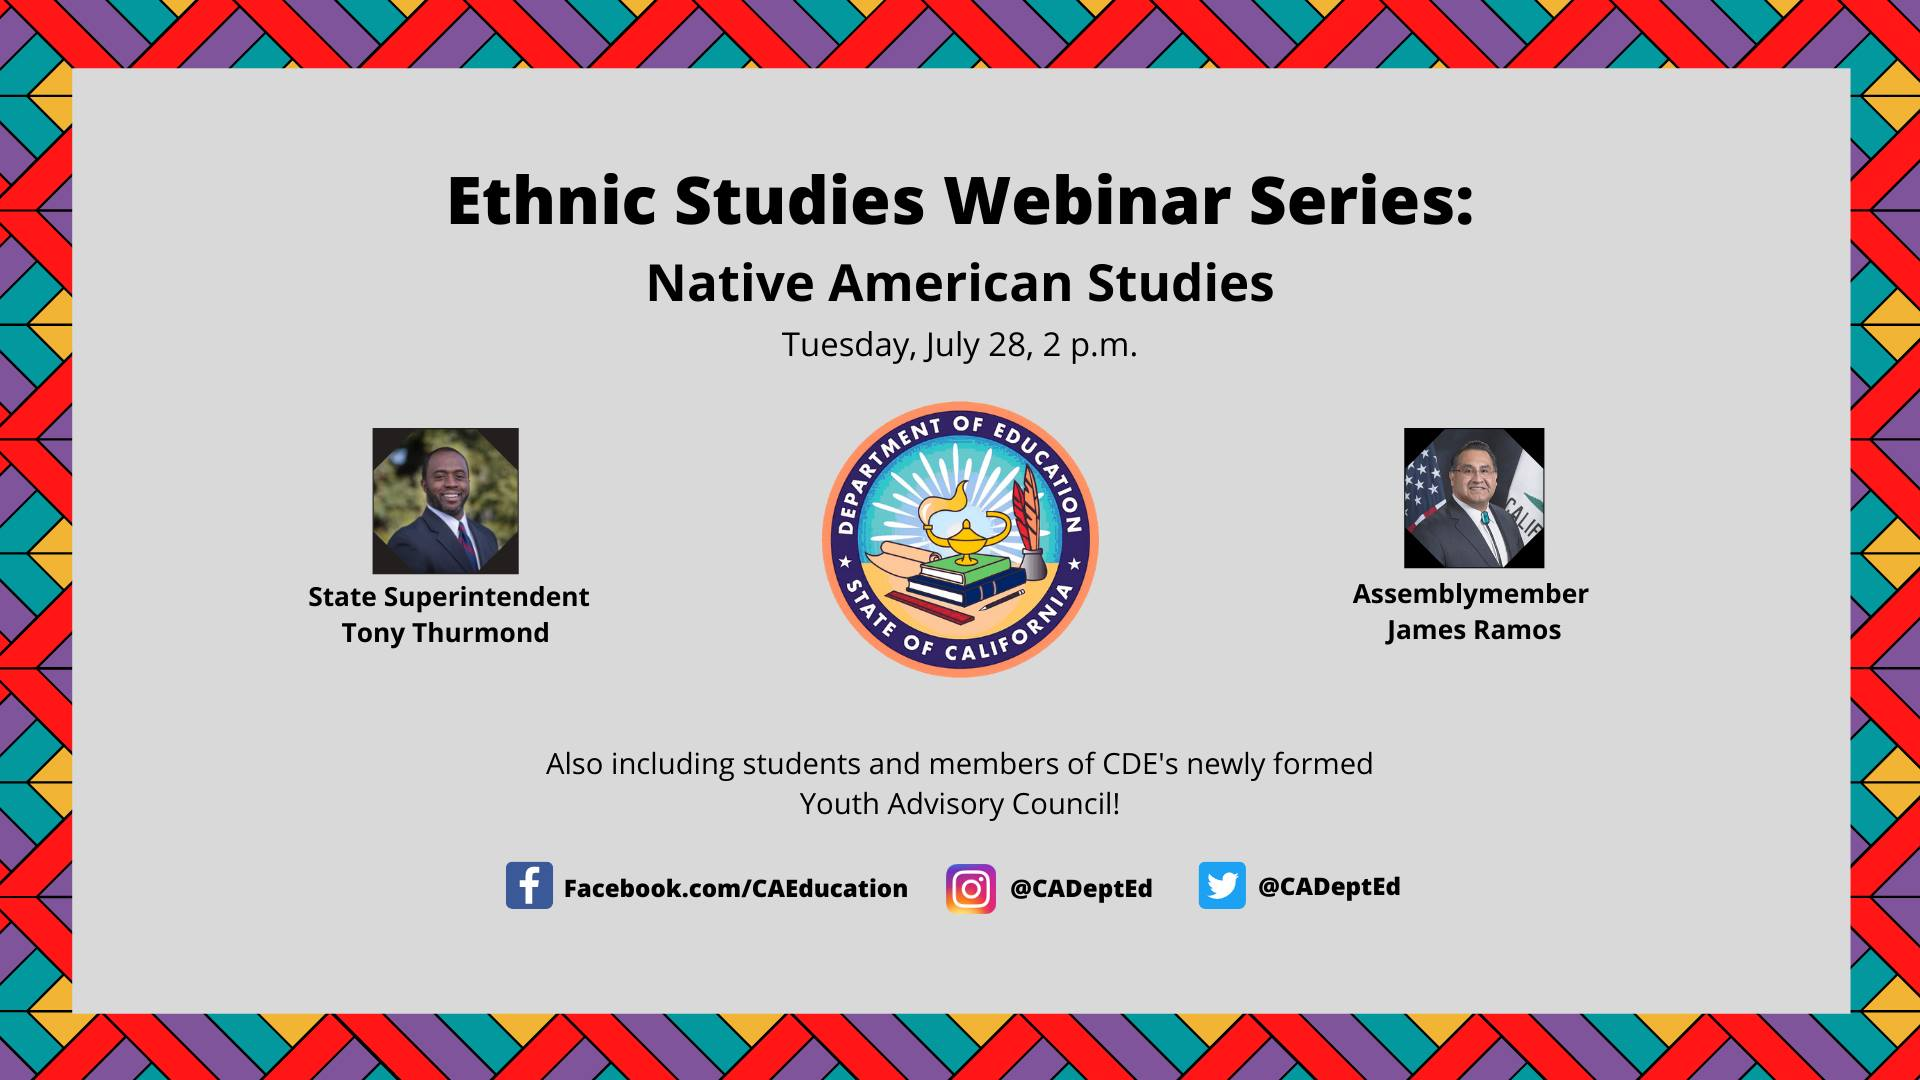 Ethnic Studies Webinar Series: Native American Studies